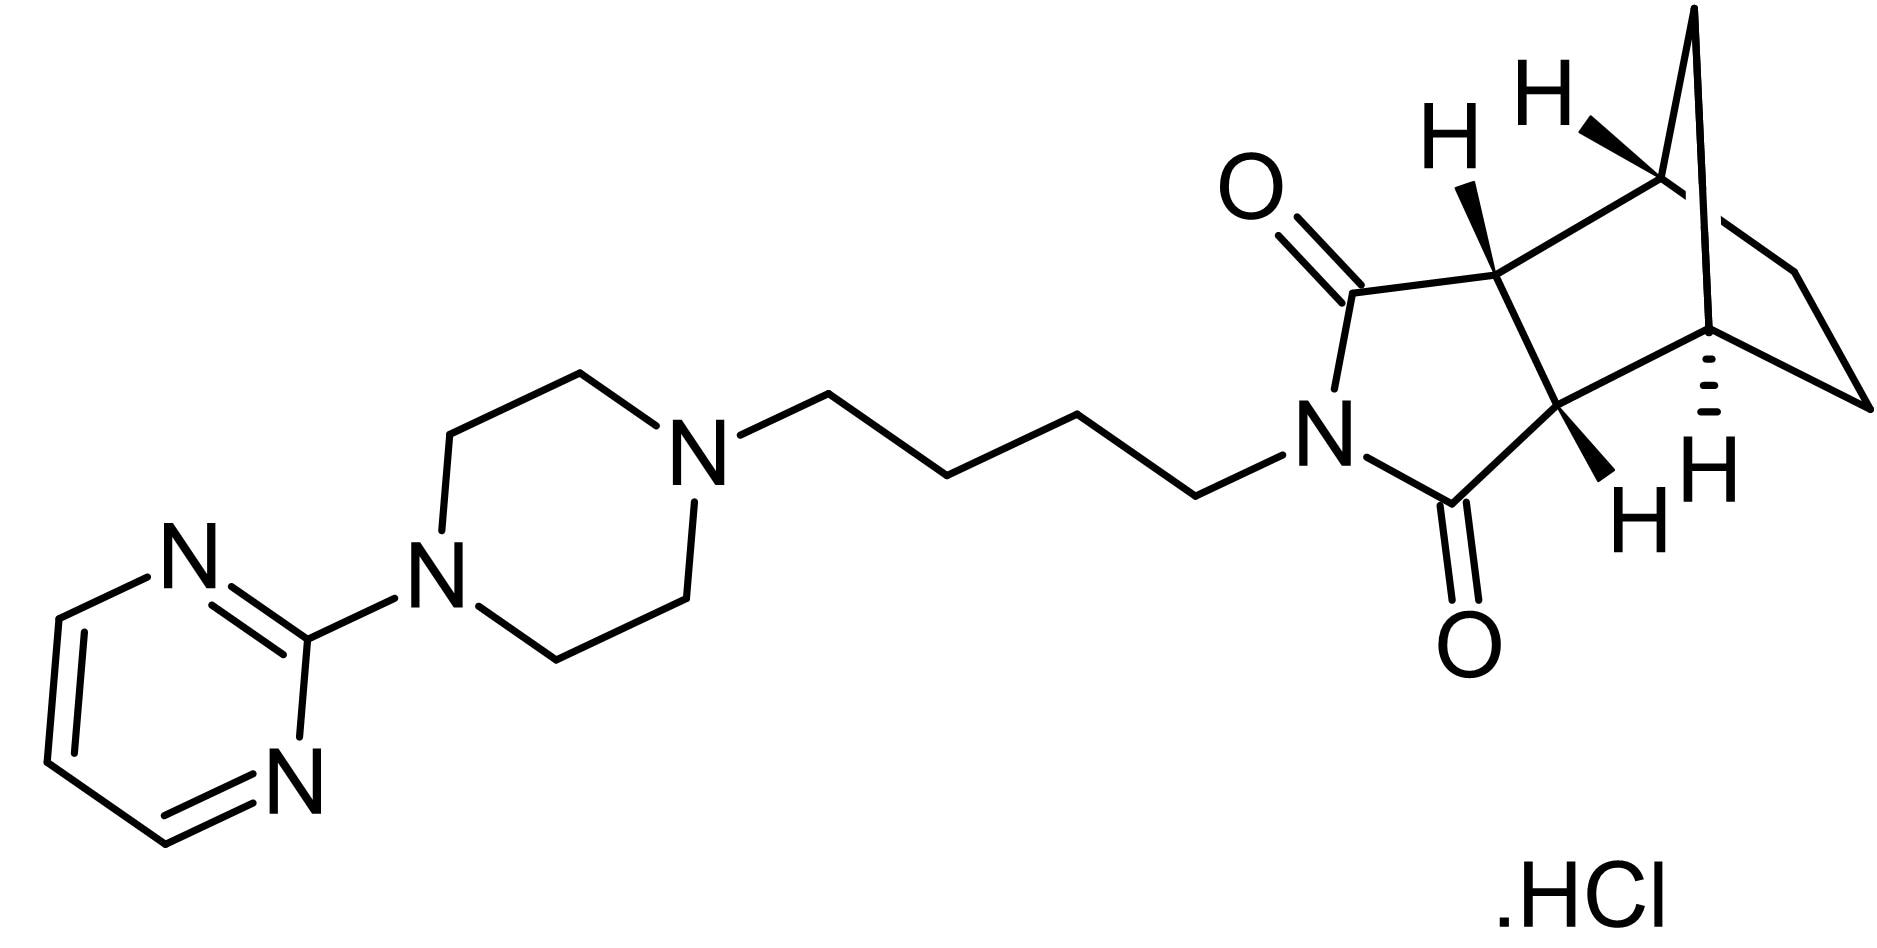 Chemical Structure - Tandospirone hydrochloride (Metanopirone), 5-HT<sub>1A</sub> partial agonist (ab146136)